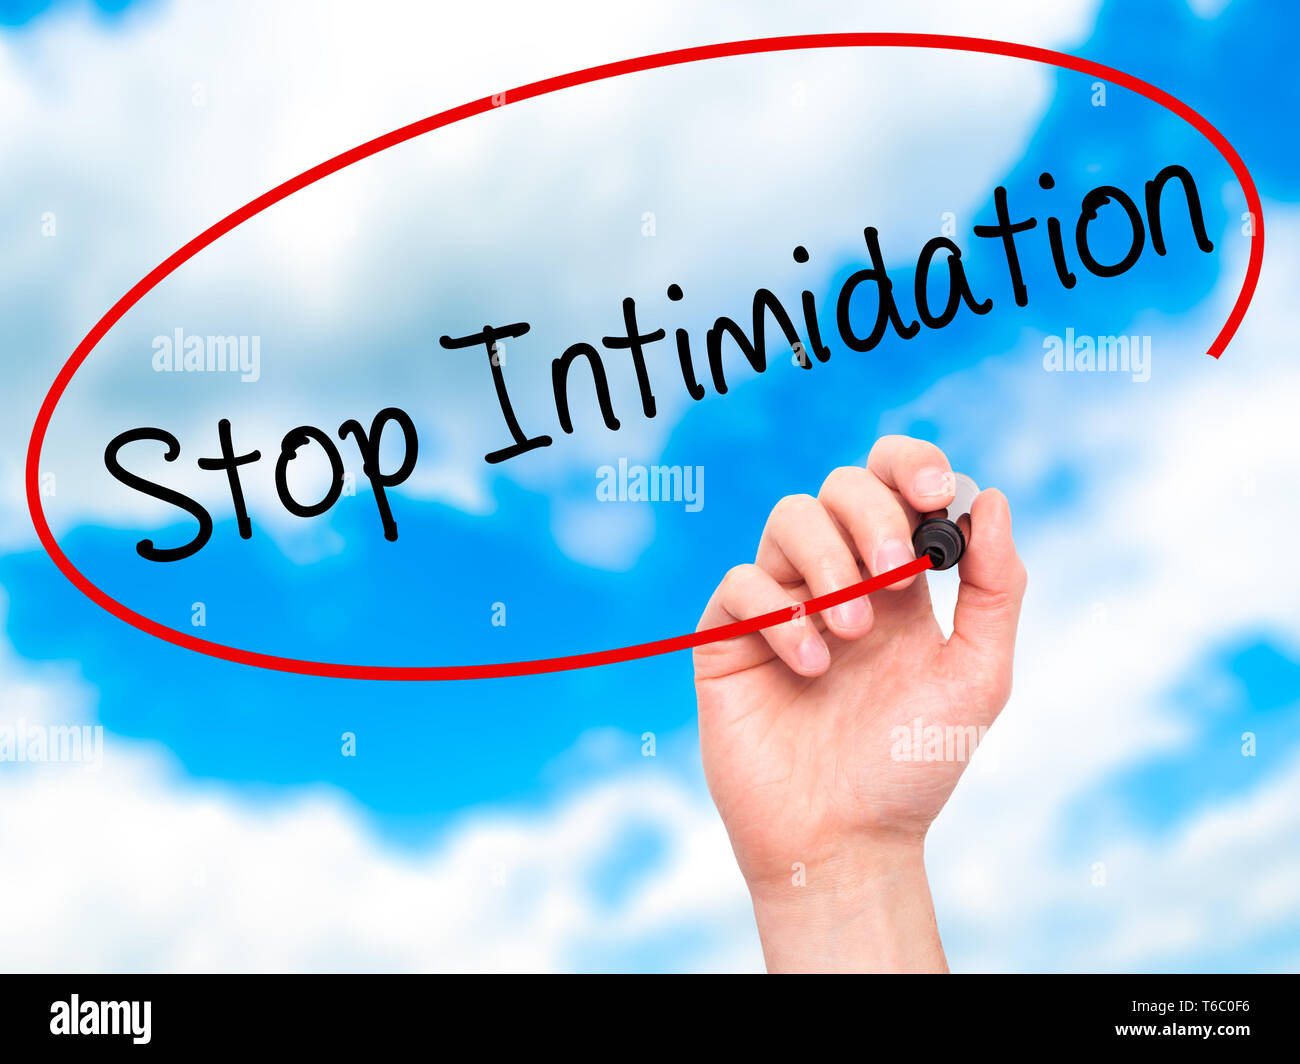 Man Hand writing Stop Intimidation with black marker on visual screen. - Stock Image